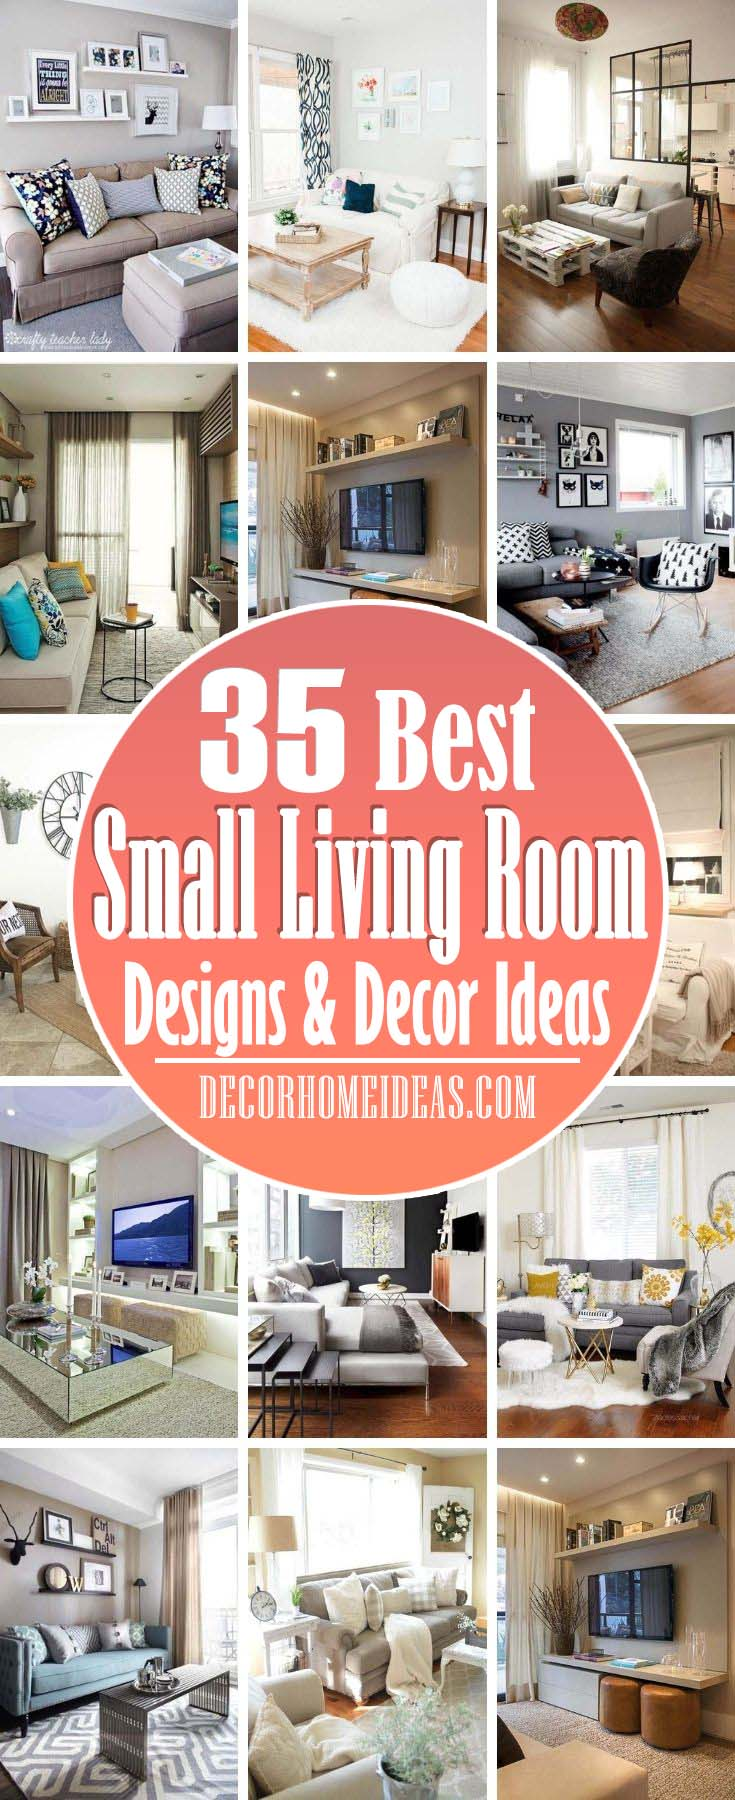 Best Small Living Room Designs Decor Ideas. If your living room is already too cluttered, the last thing you'll want to do is hang out there. But with these ideas, you can make a small living room seem bigger than it is. #decorhomeideas